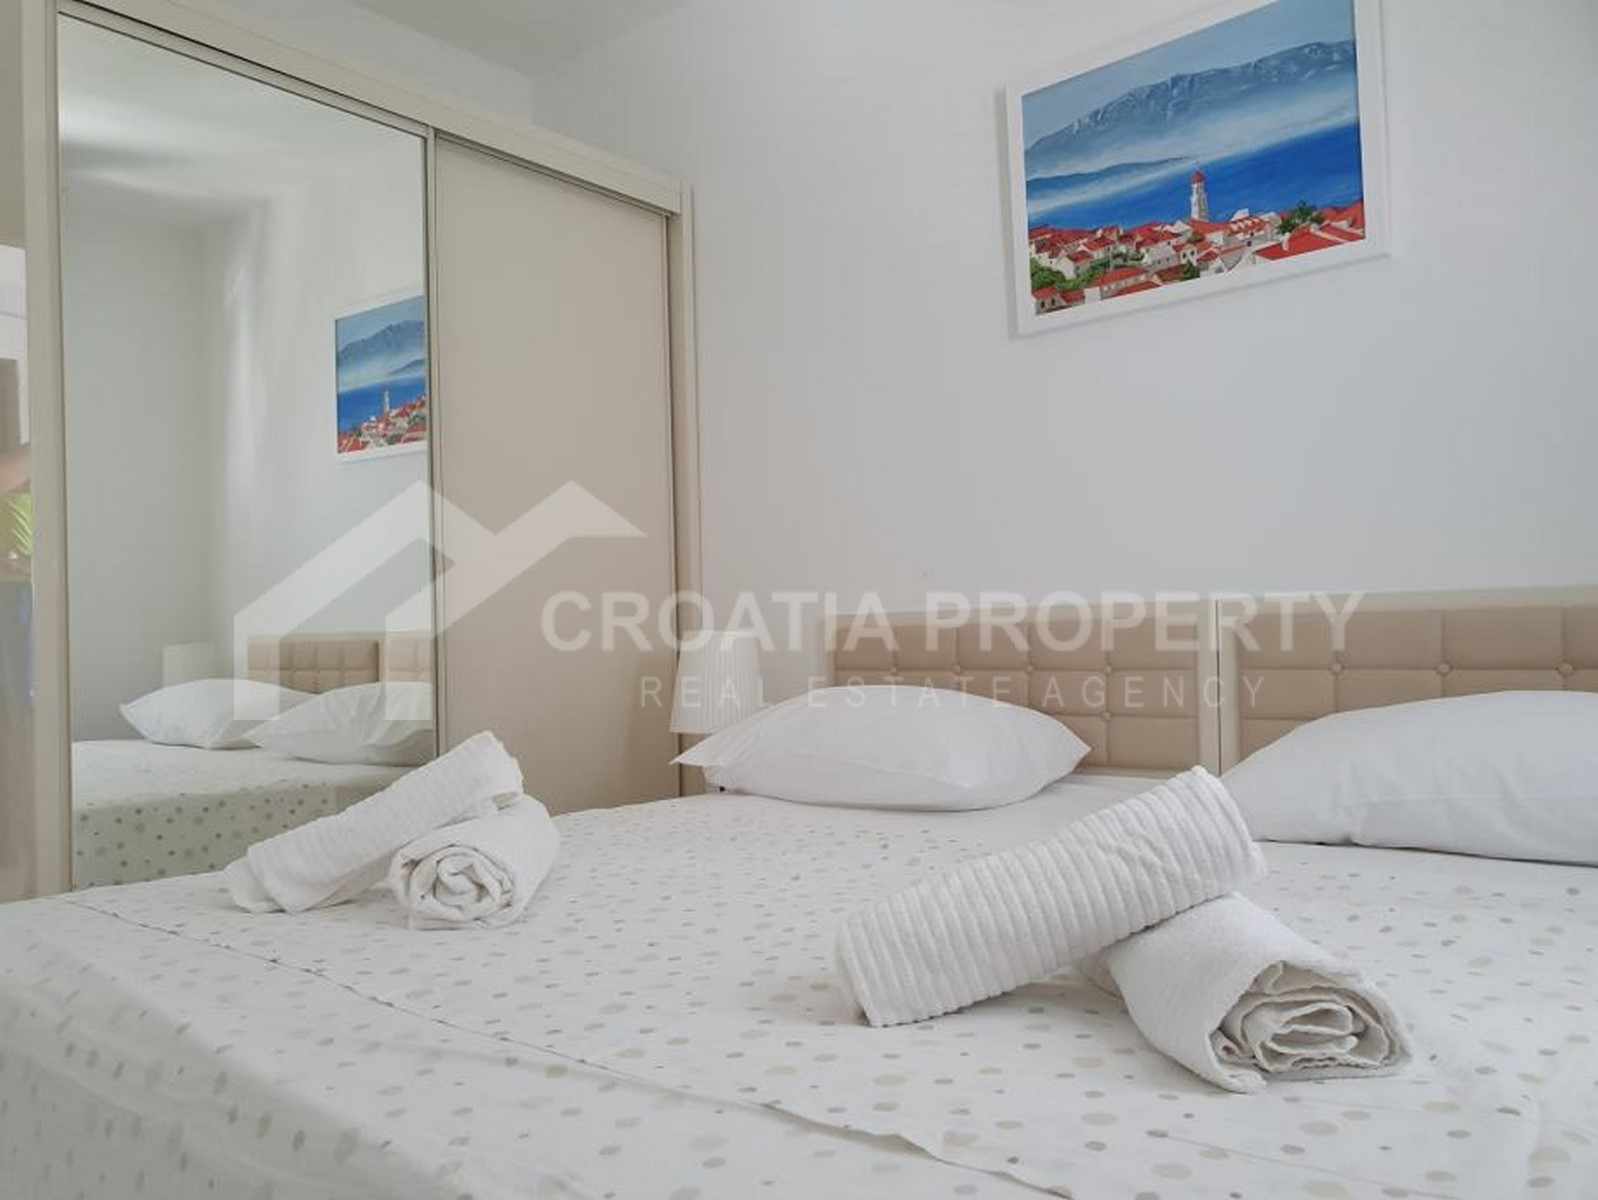 One bedroom apartment Sutivan for sale